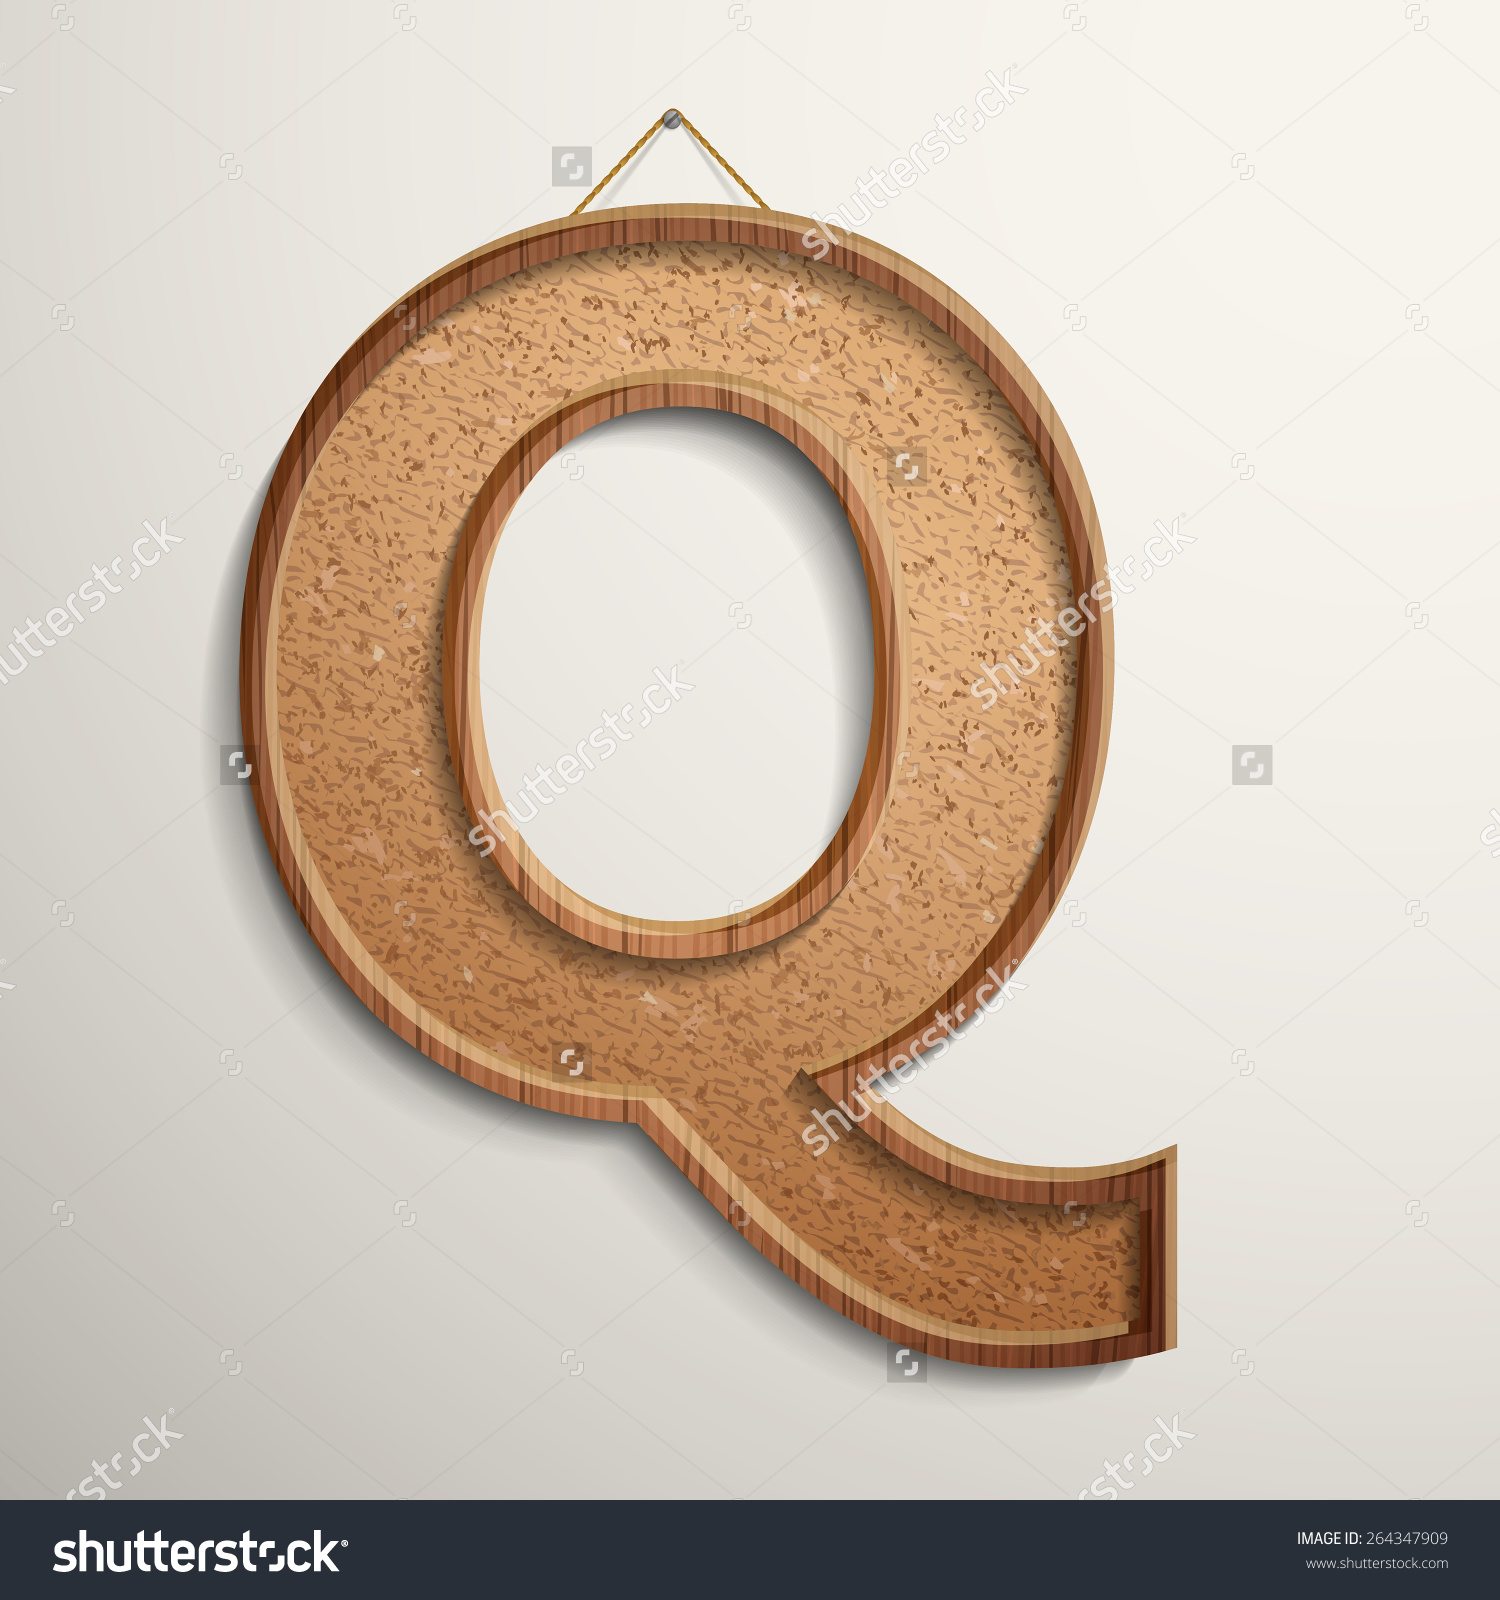 3d cork board texture letter Q isolated on beige background